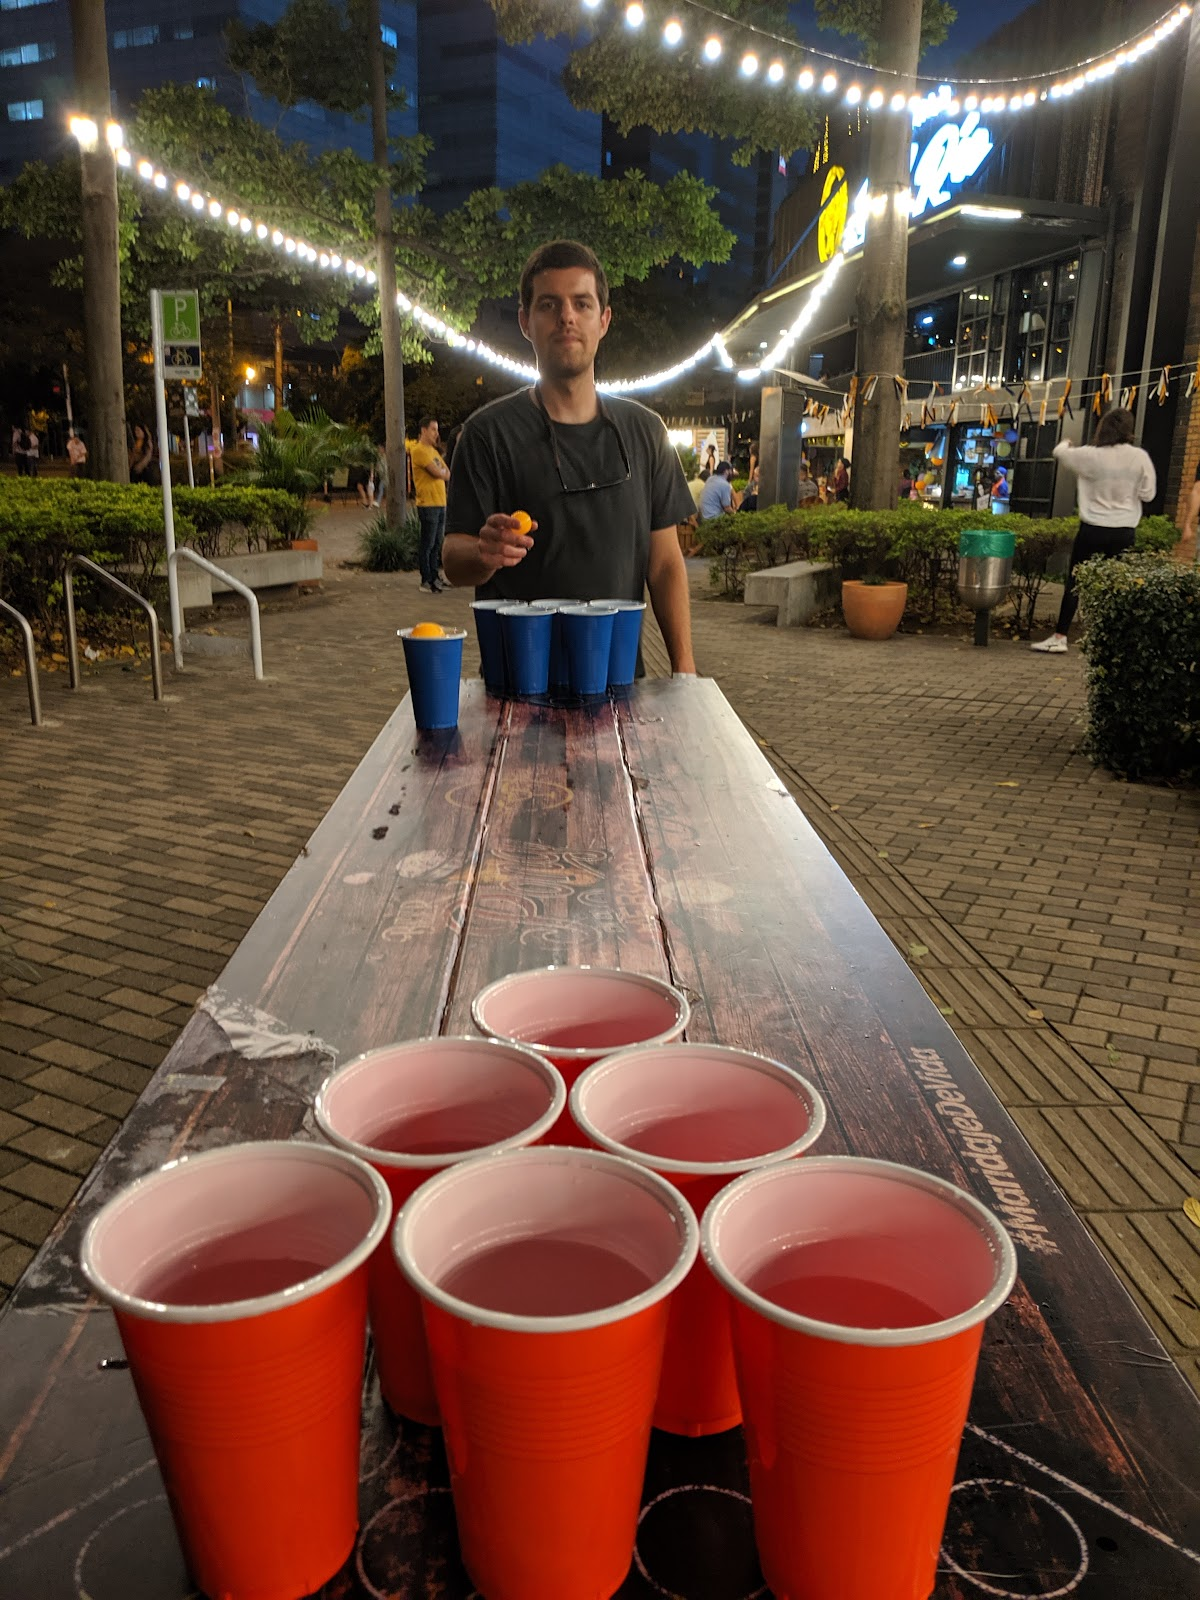 Brandon playing pong at Mercado del Río in Medellin, Colombia.